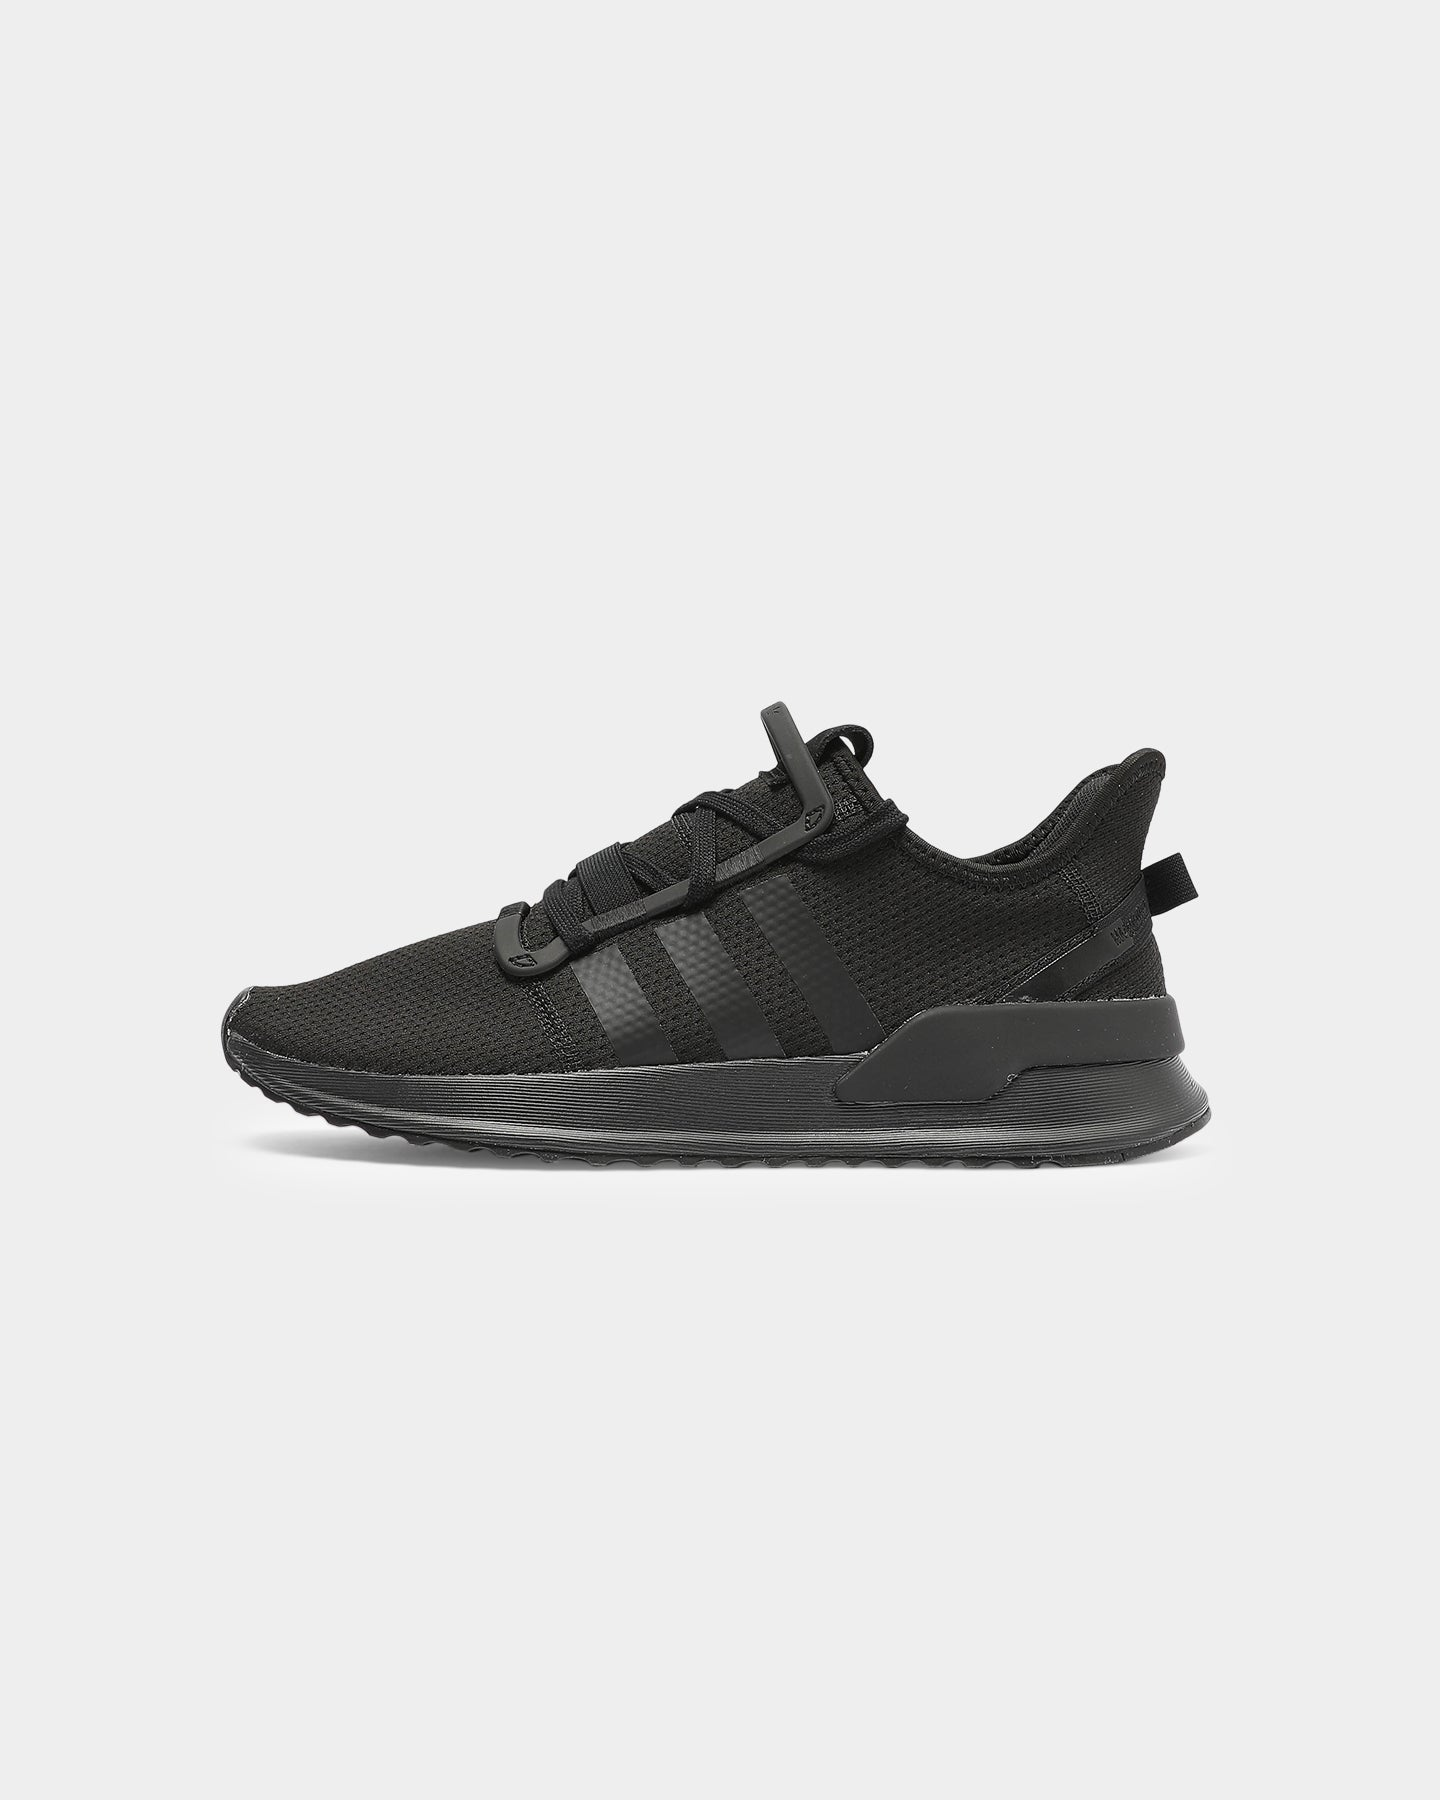 ADIDAS U_PATH RUN BLACKBLACKBLACK